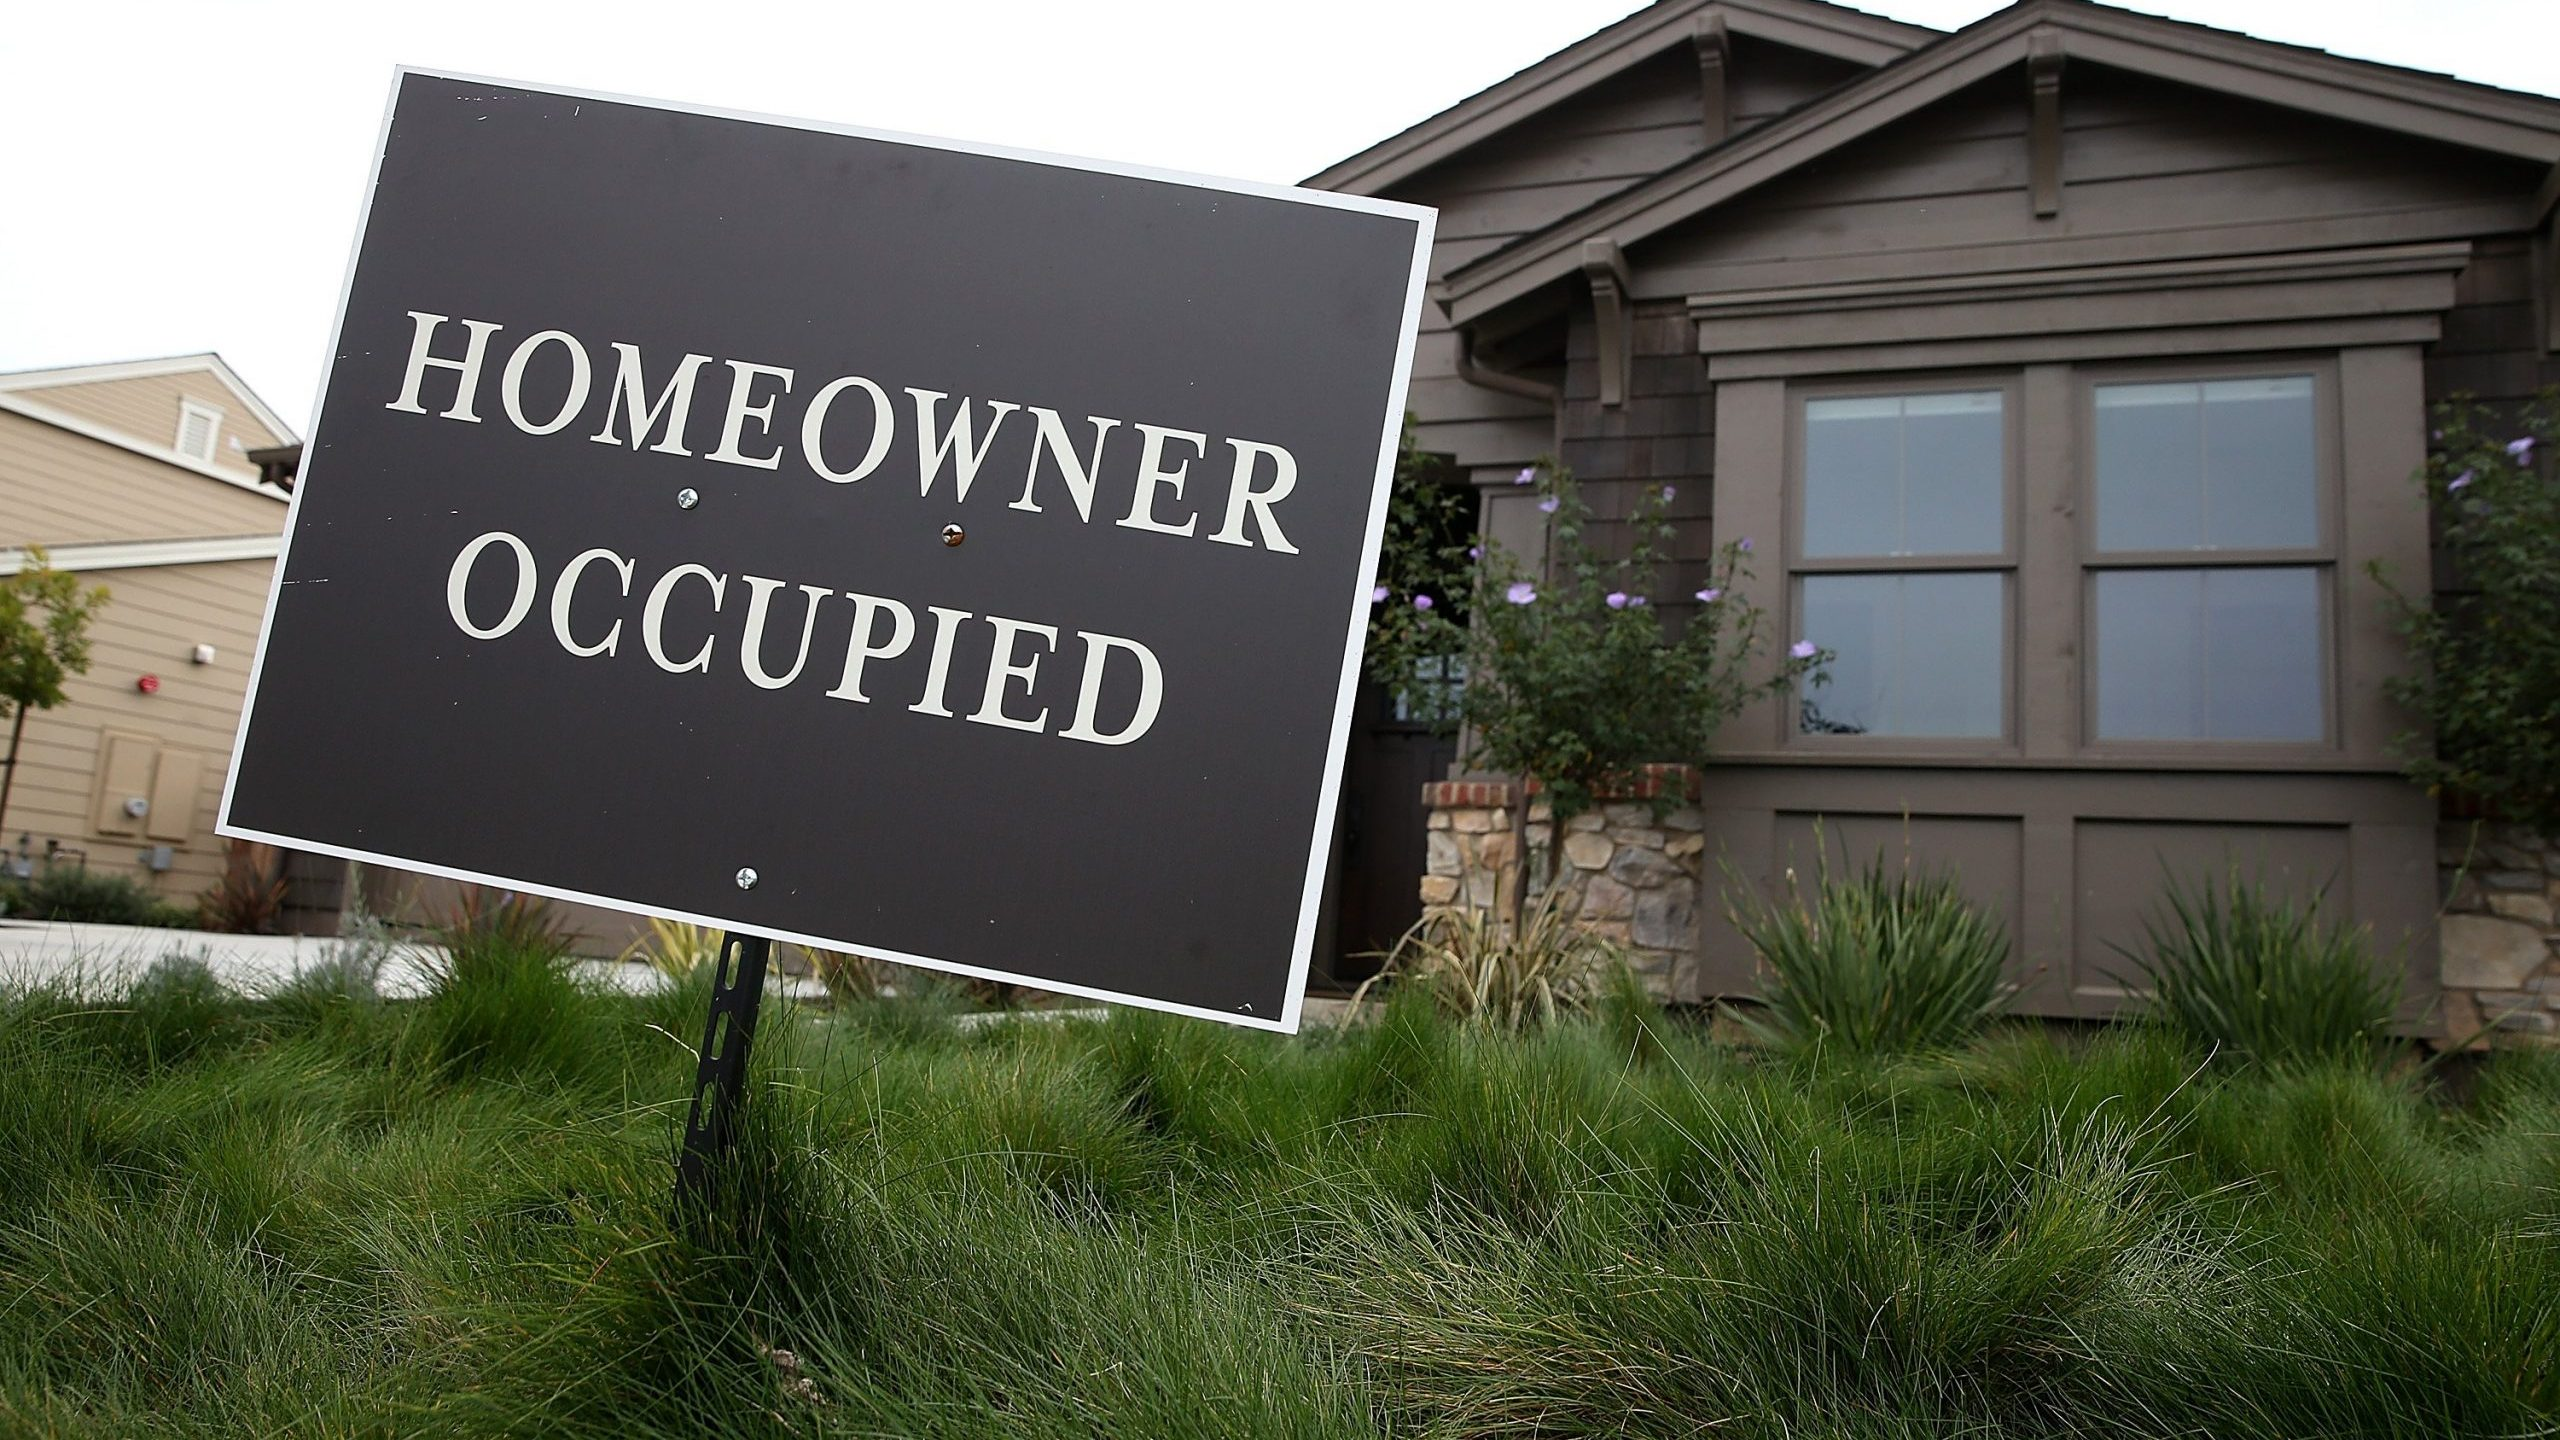 A homeowner occupied sign is posted in front of a recently purchased new home at the Rose Lane housing development in Lakespur on Jan. 27, 2015. (Credit: Justin Sullivan / Getty Images)